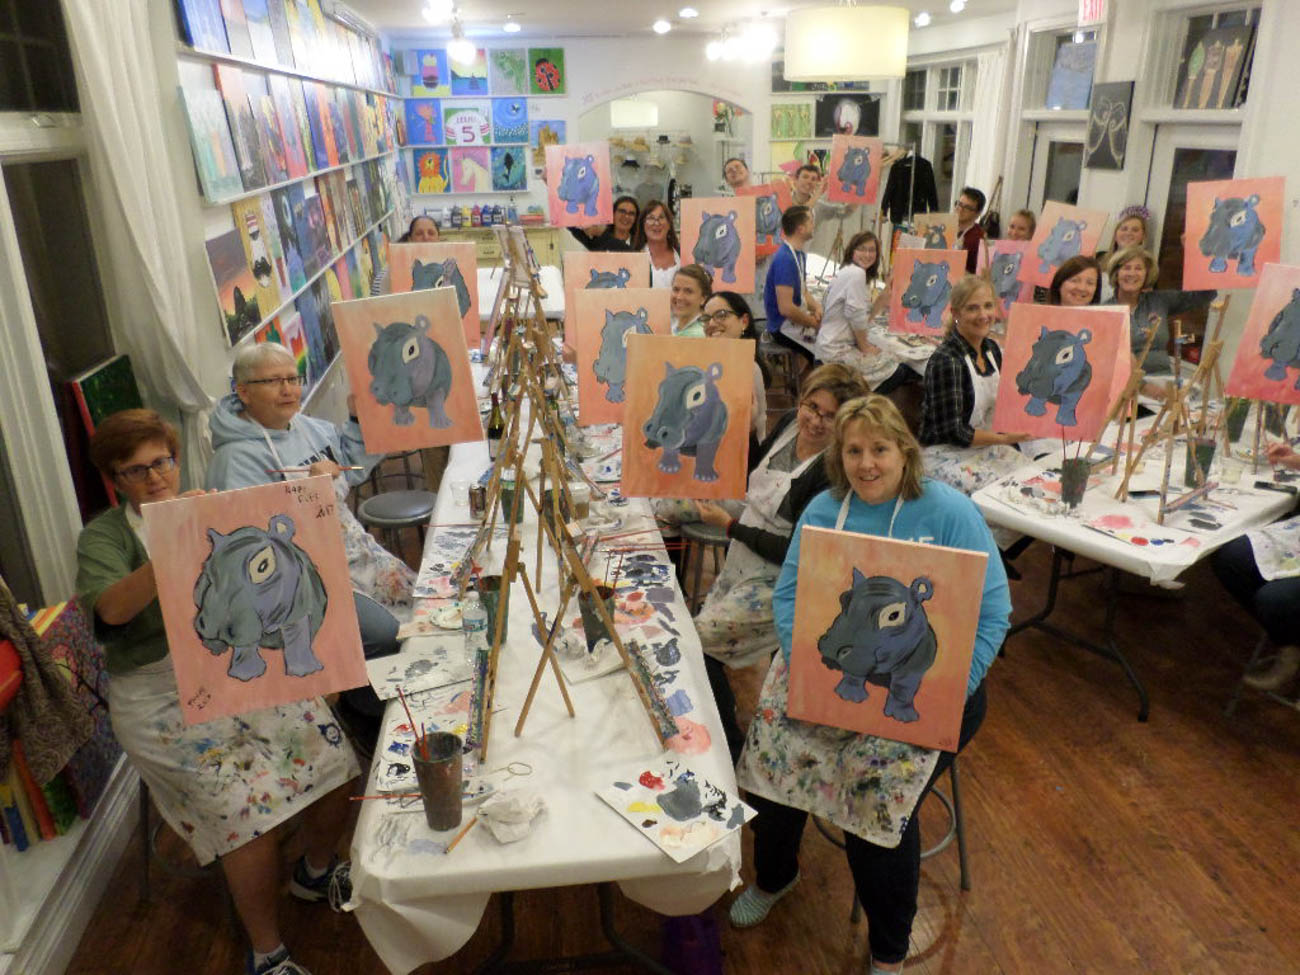 "PLACE: Cheers to Art! / ADDRESS: 7700 Camargo Road (45243) / This locally-owned art facility jazzes up the art scene with live music once a month on WAM Nights (wine, art, and music). Classes include painting on a canvas, or, as they like to call, making a ""wood creation,"" which is where you paint on a wooden sign or decor piece. The bar in their Madeira studio features wine, beer, and soft drinks. They also host art events at other local sites, such as at Paul Brown Stadium, U.C., businesses, or even in your own home. All of the paintings are designed by the staff. / Image courtesy of Cheers to Art! // Published: 12.21.18"